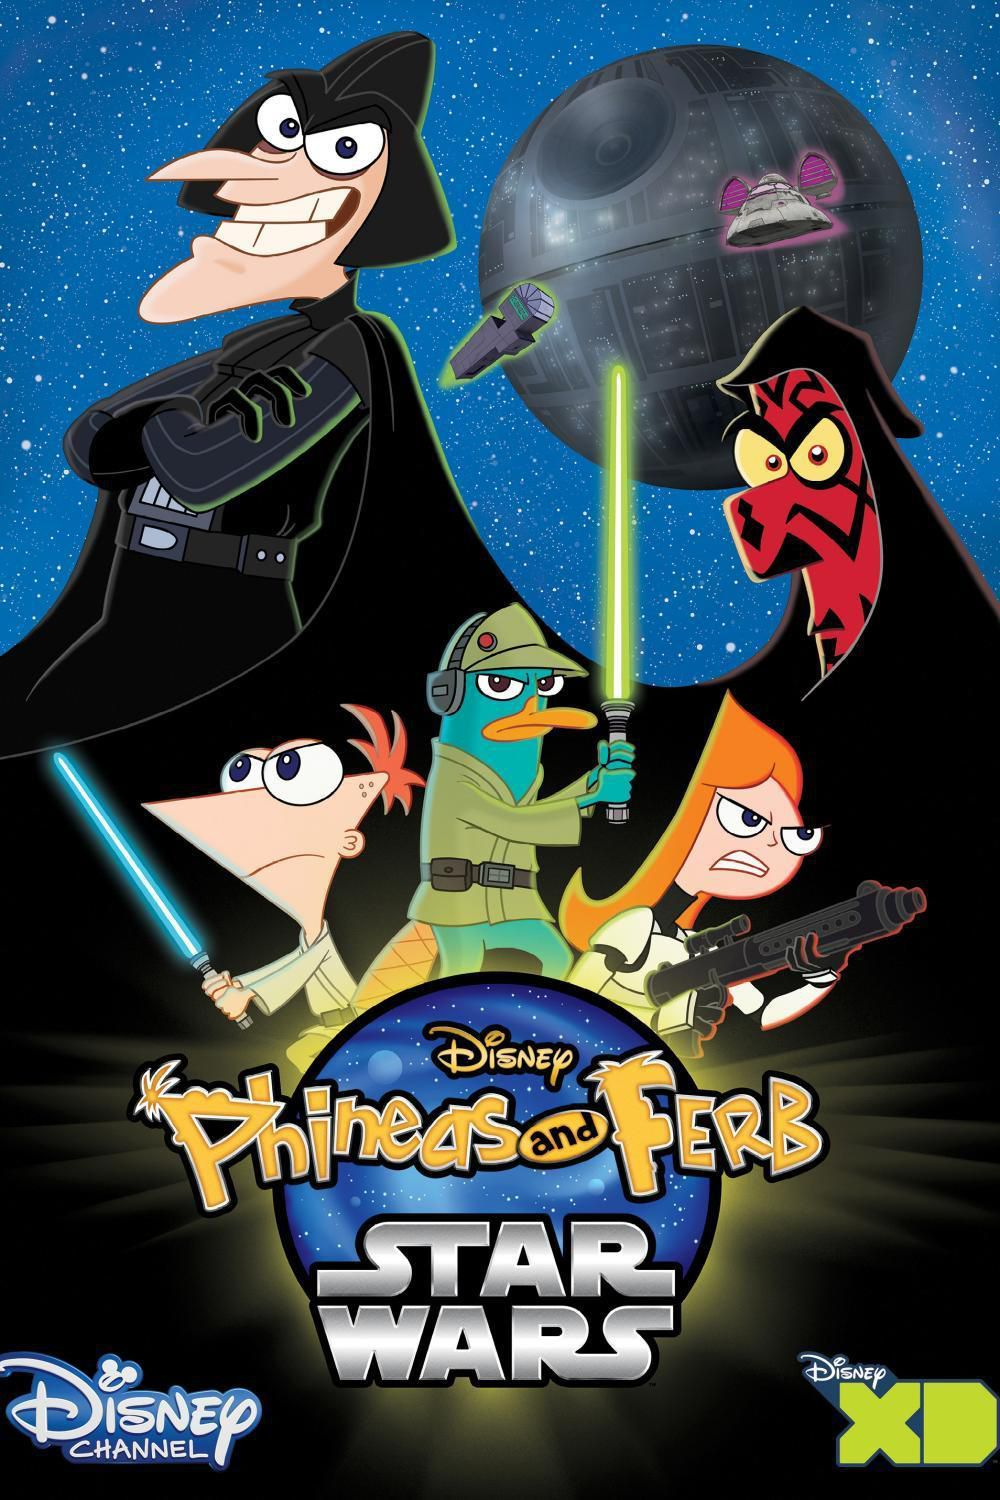 affiche poster phineas ferb star wars disney